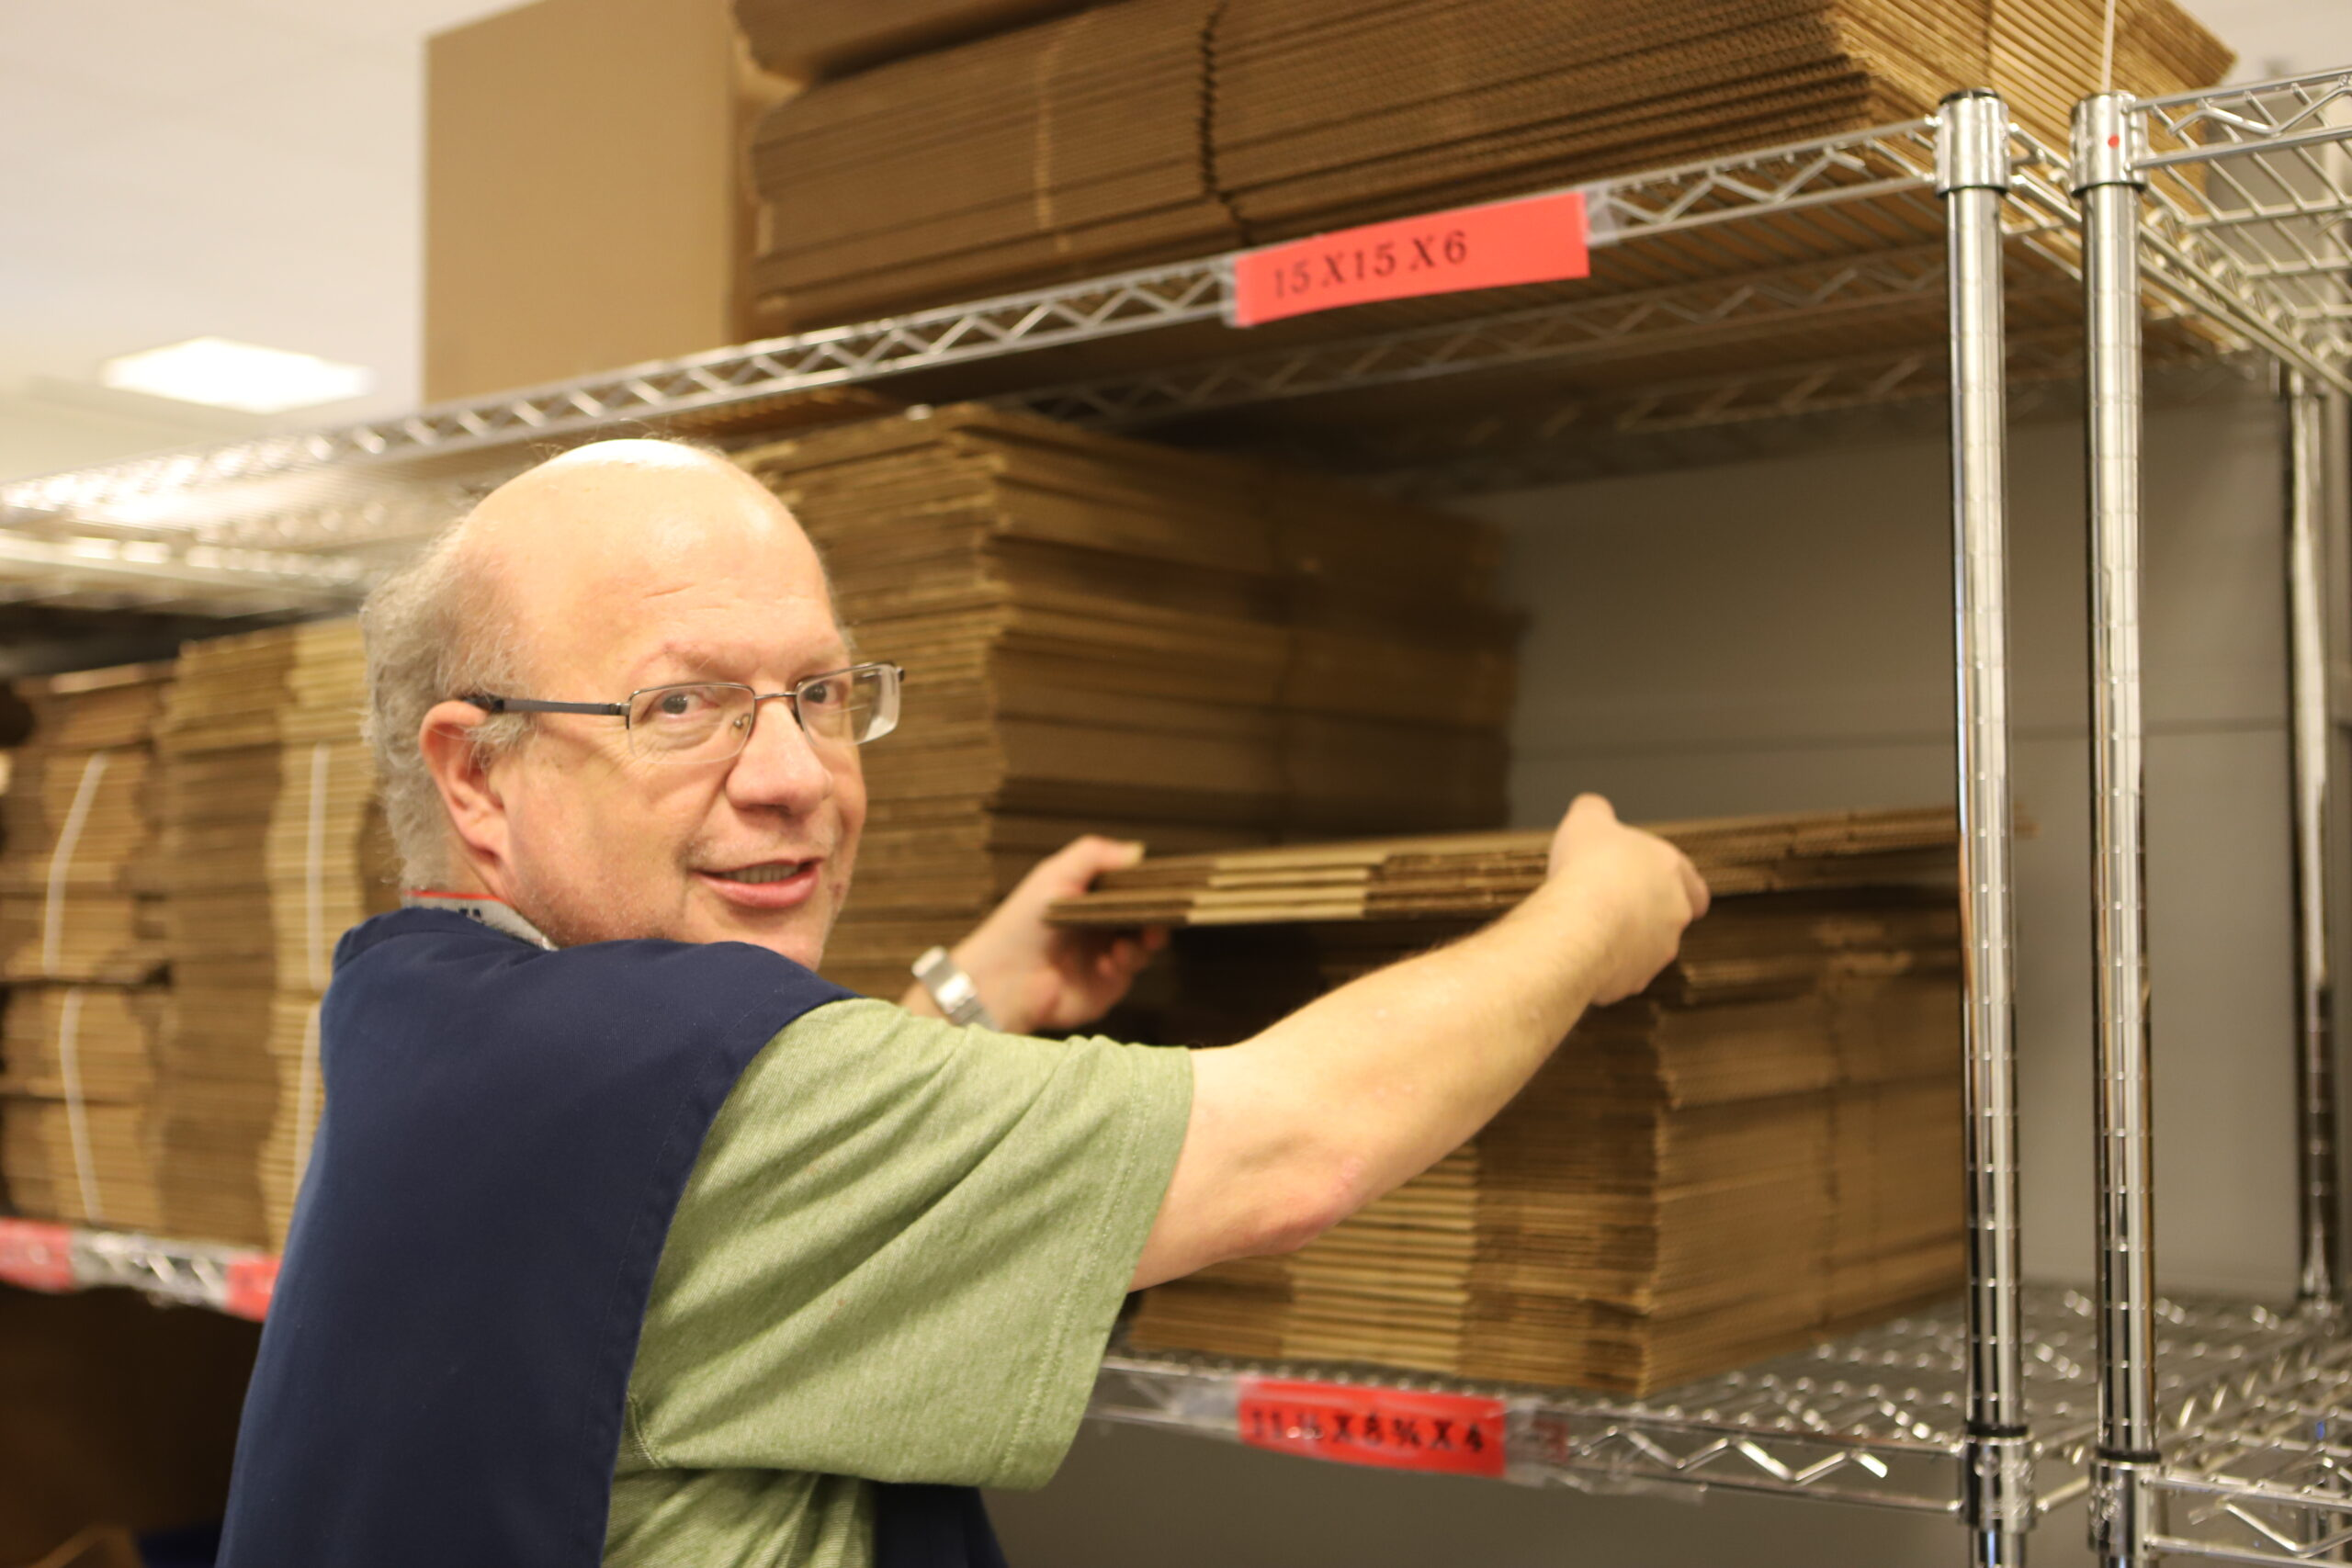 man with hands on cardboard boxes looking at camera